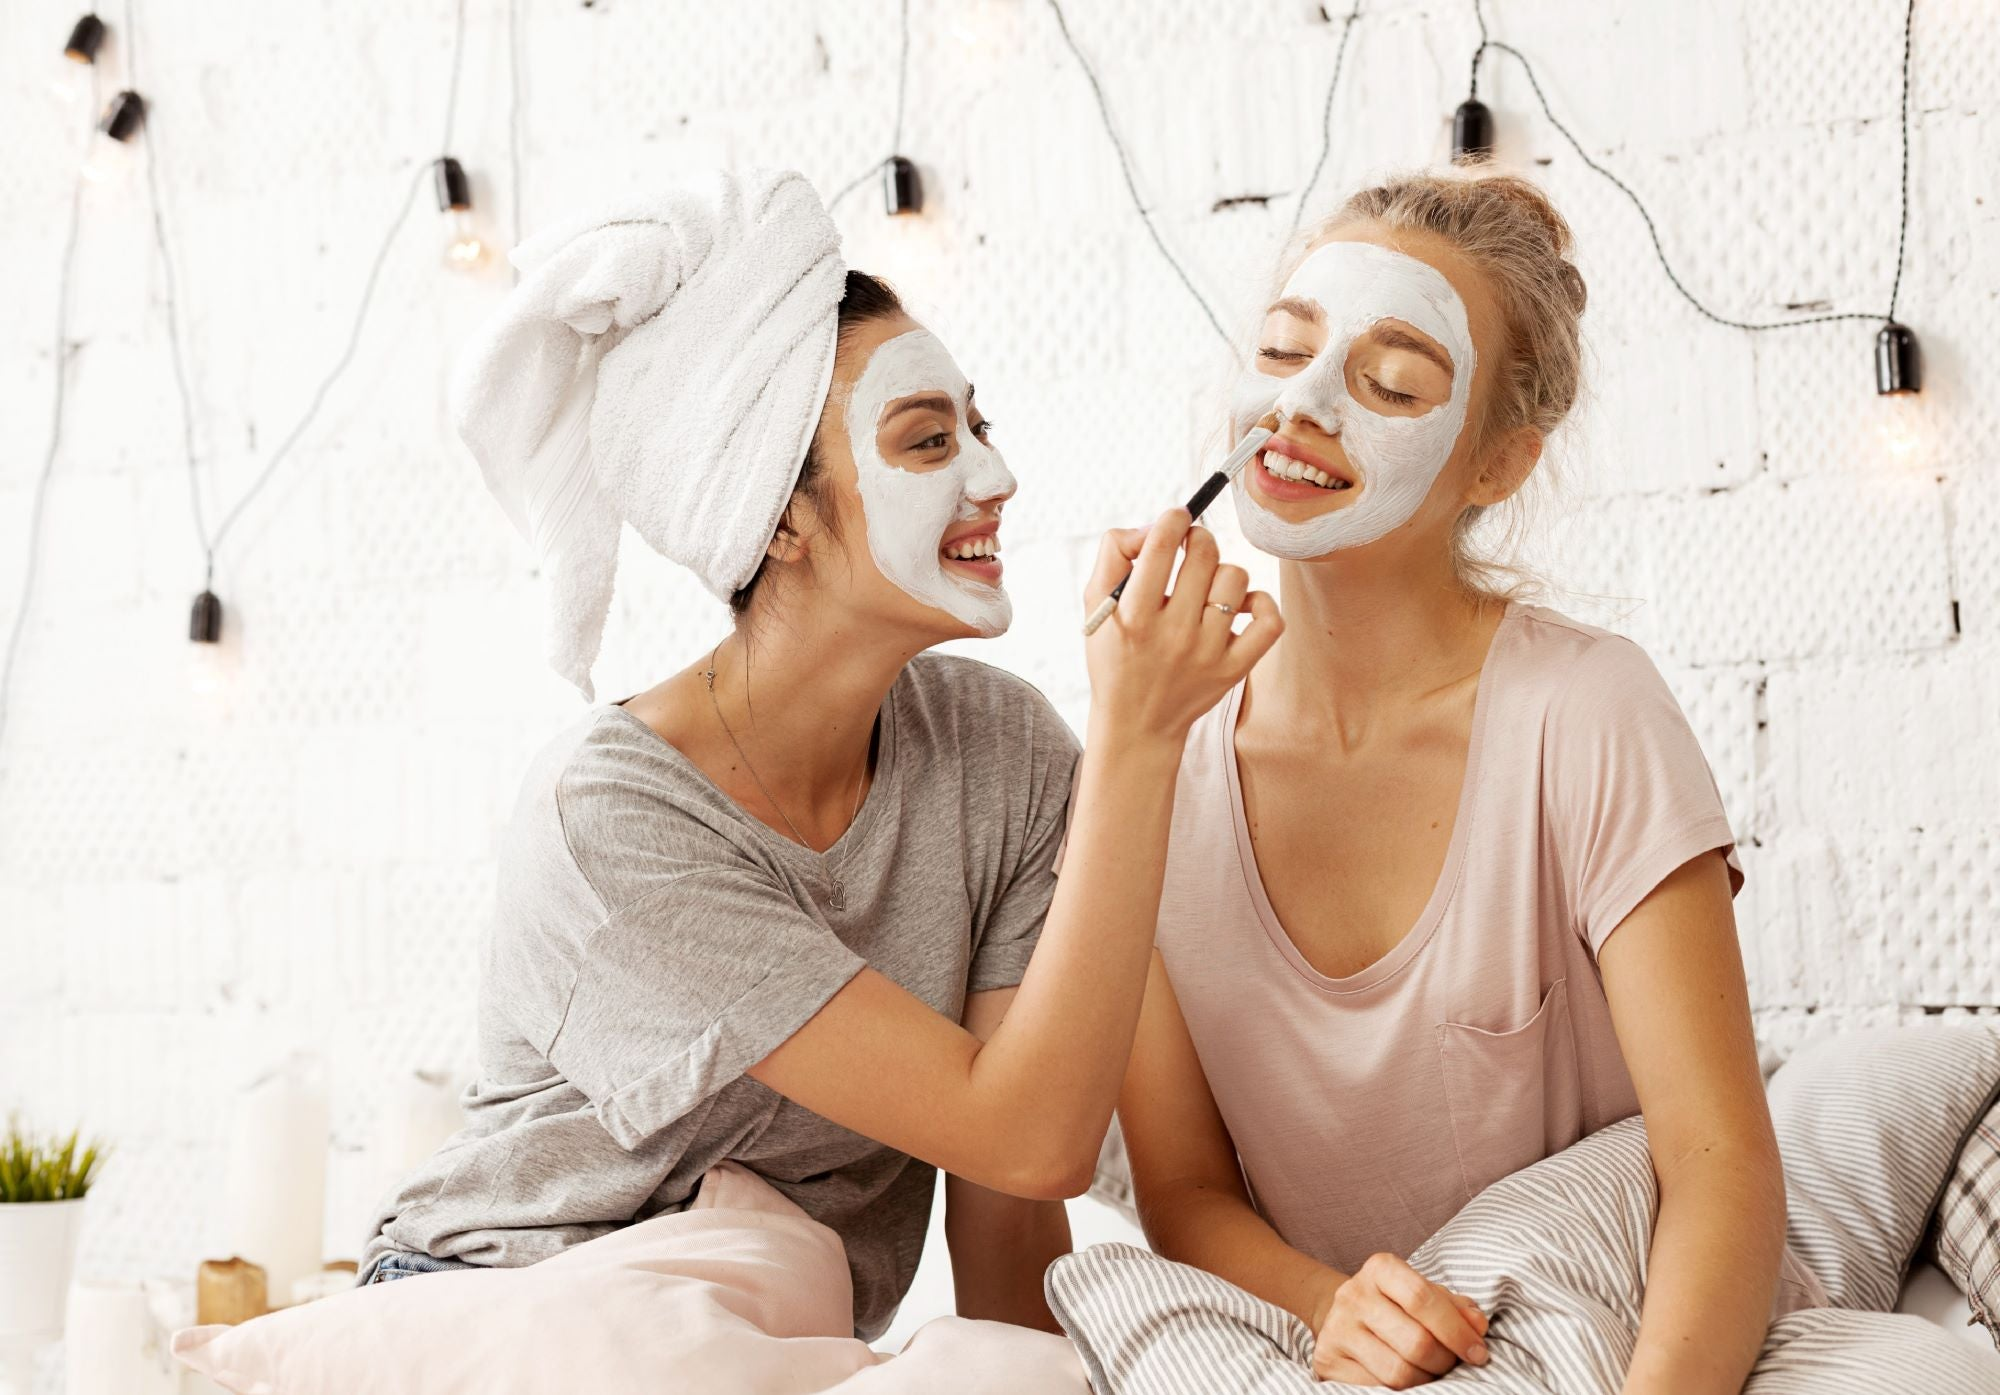 THE BENEFITS OF KAOLIN CLAY + HOW TO INCLUDE IT IN YOUR SKIN CARE ROUTINE